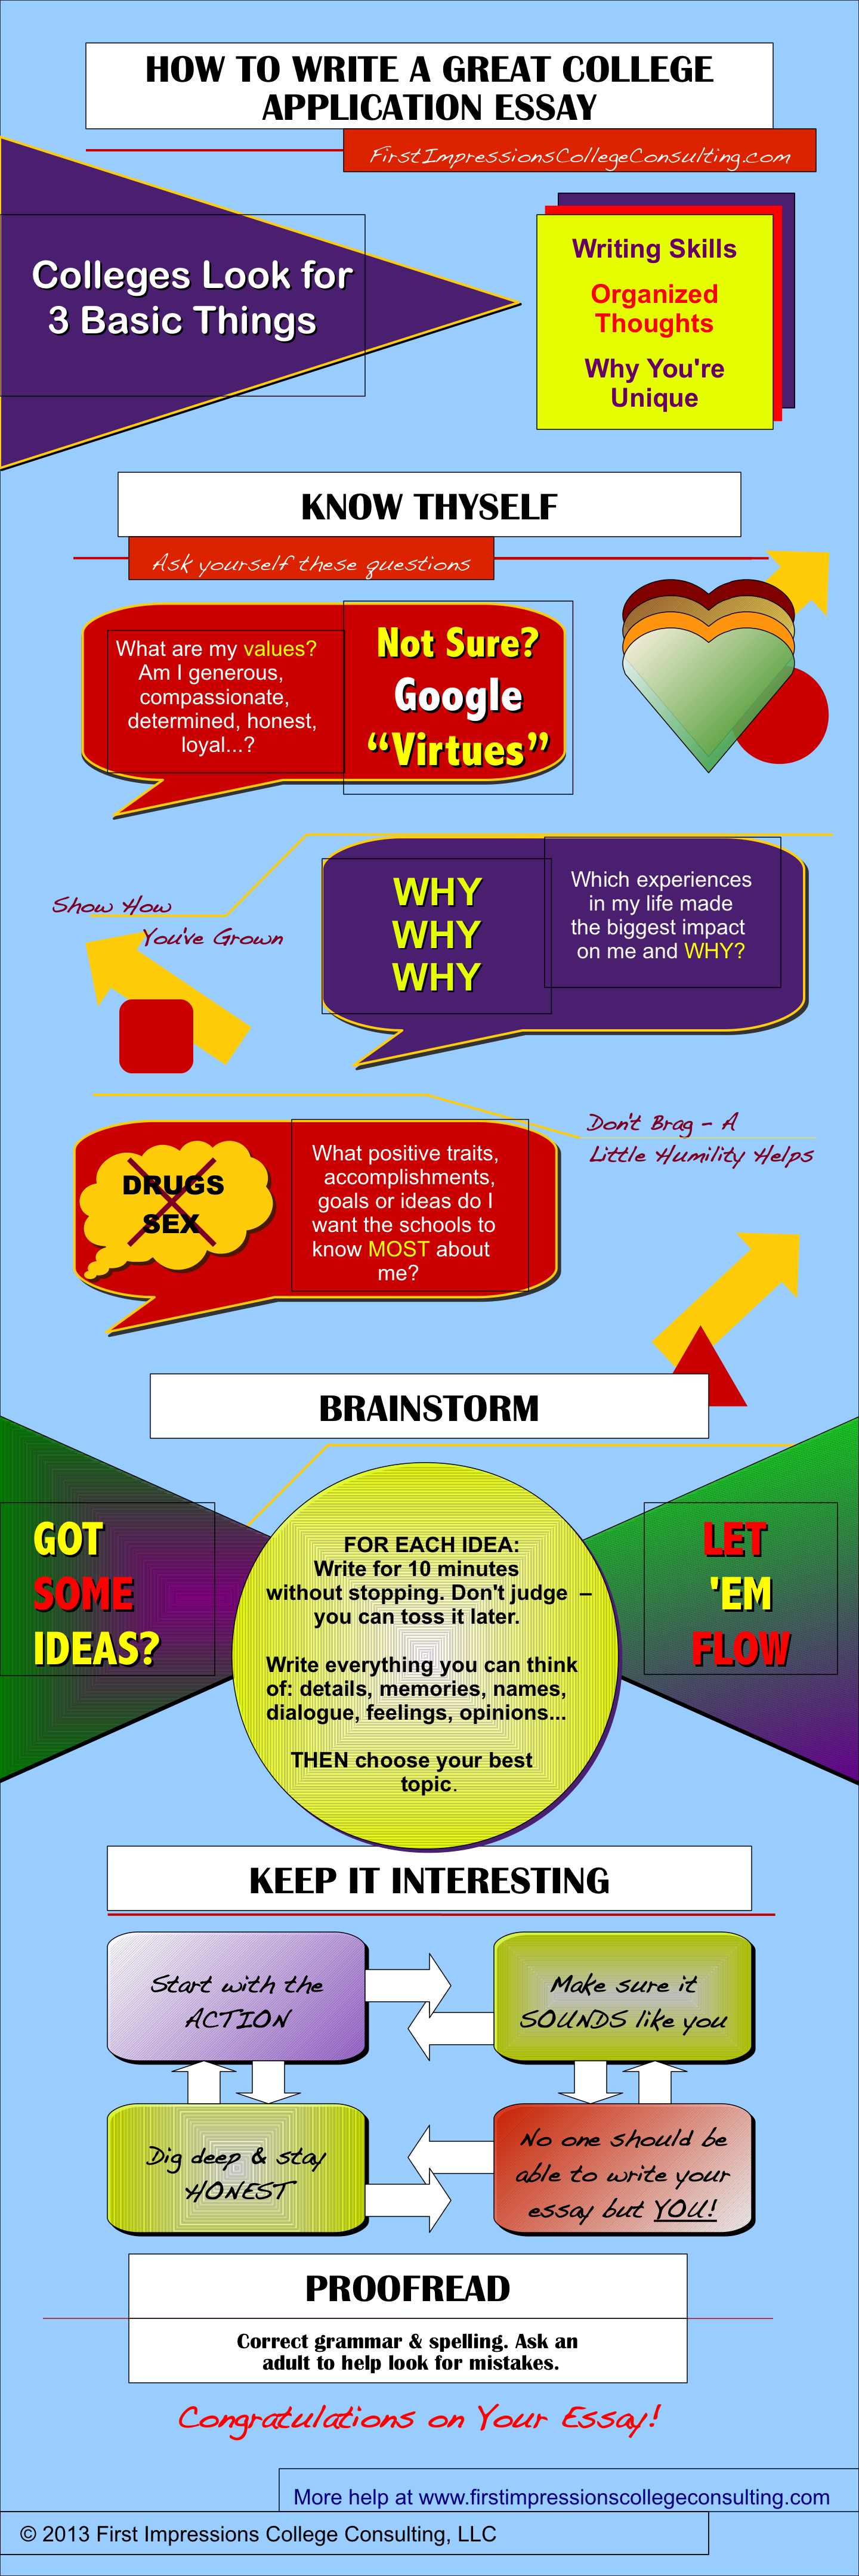 012 College Essay Consultants Write Great Infographic Final Fantastic Best Full